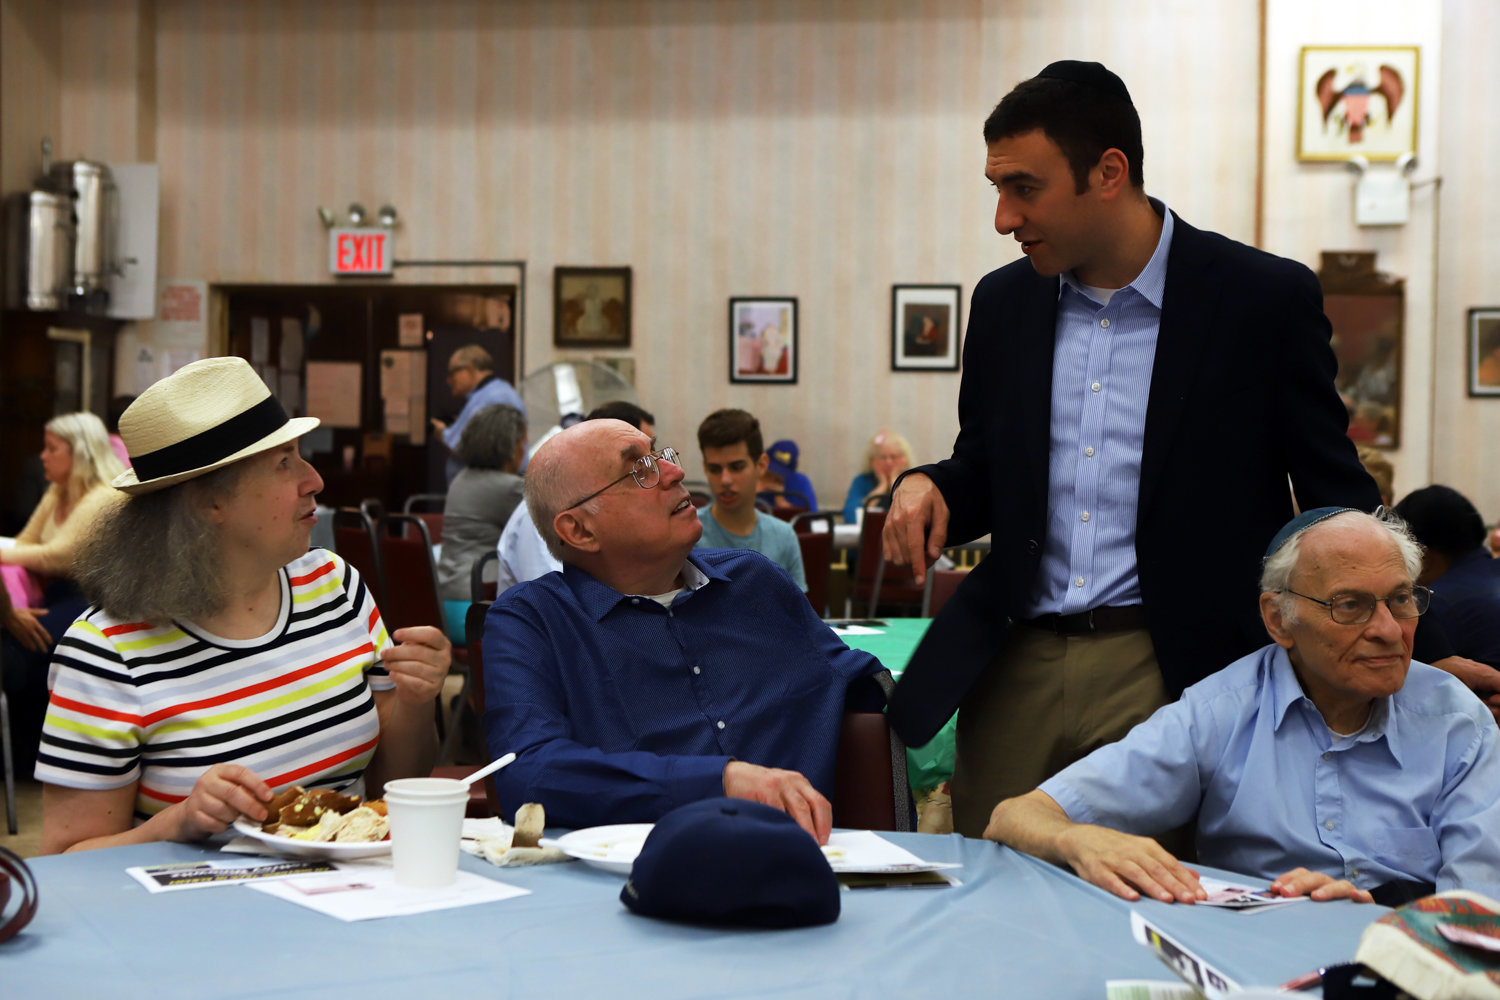 City Council candidate Eric Dinowitz speaks with community members at a brunch at the Van Cortlandt Jewish Center before state Sen. Alessandra Biaggi and his father, Assemblyman Jeffrey Dinowitz, speak to the crowd.